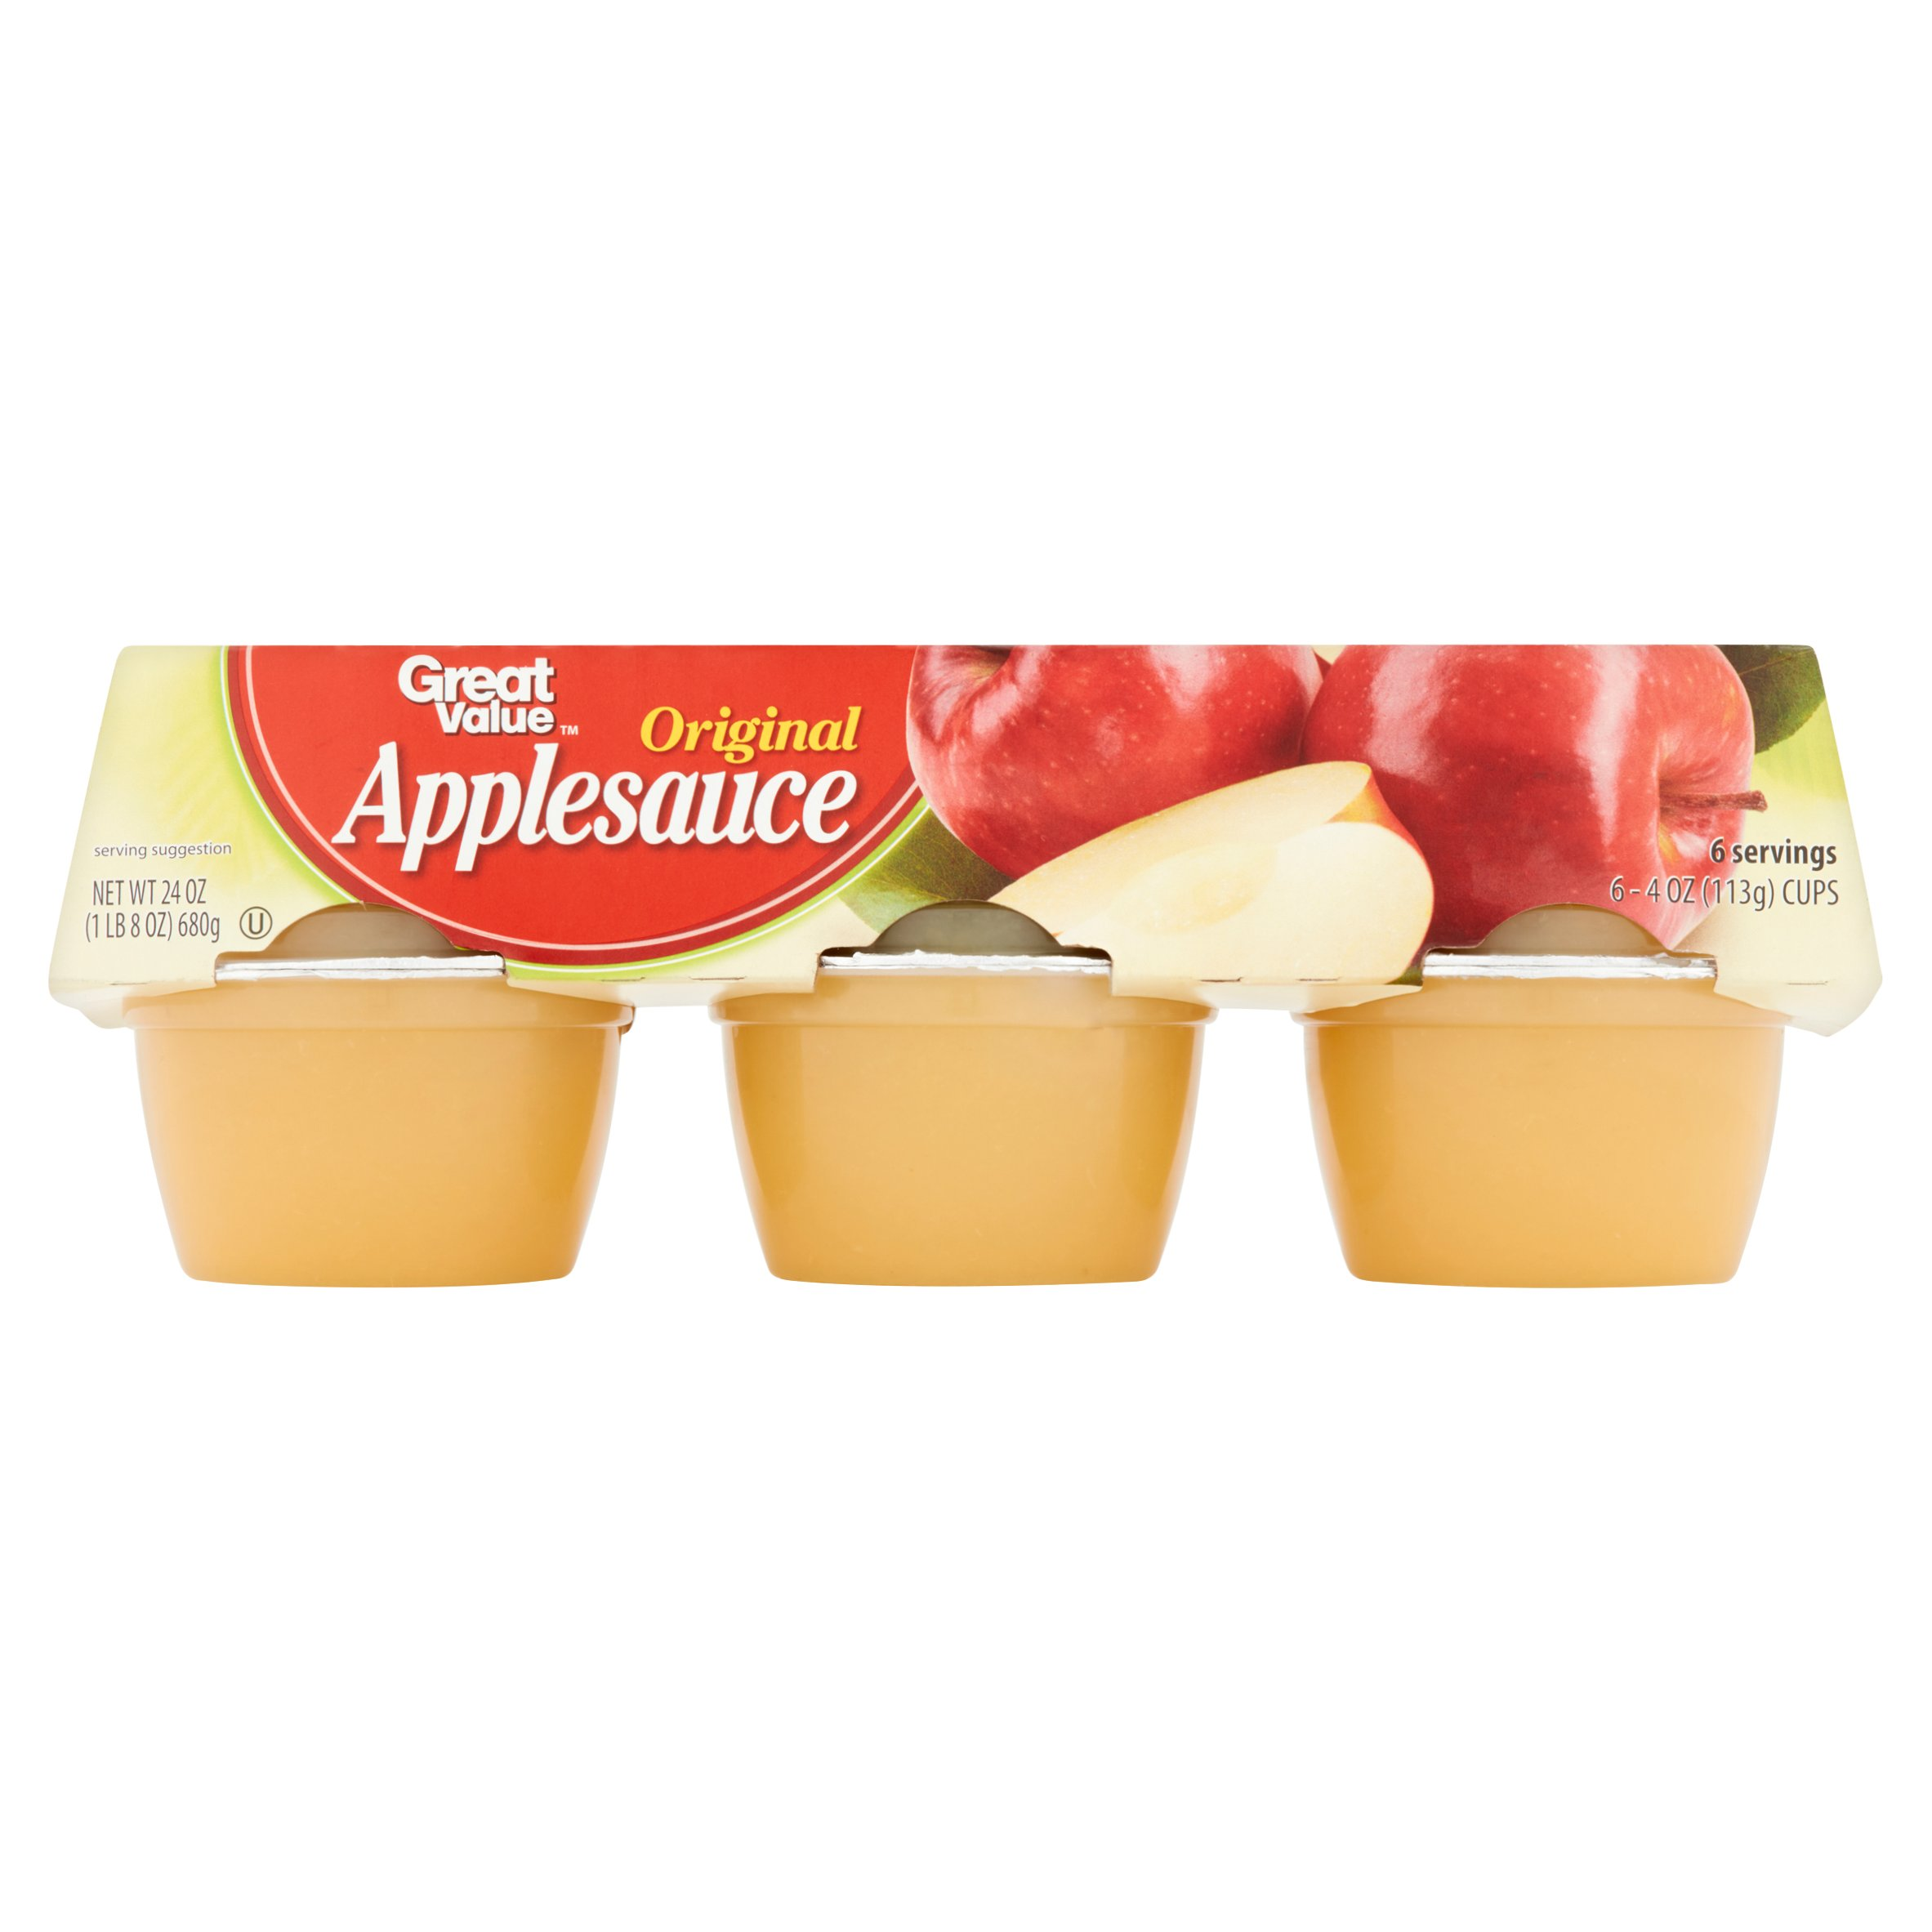 (3 Pack) Great Value Applesauce Cups, Original, 6 Count